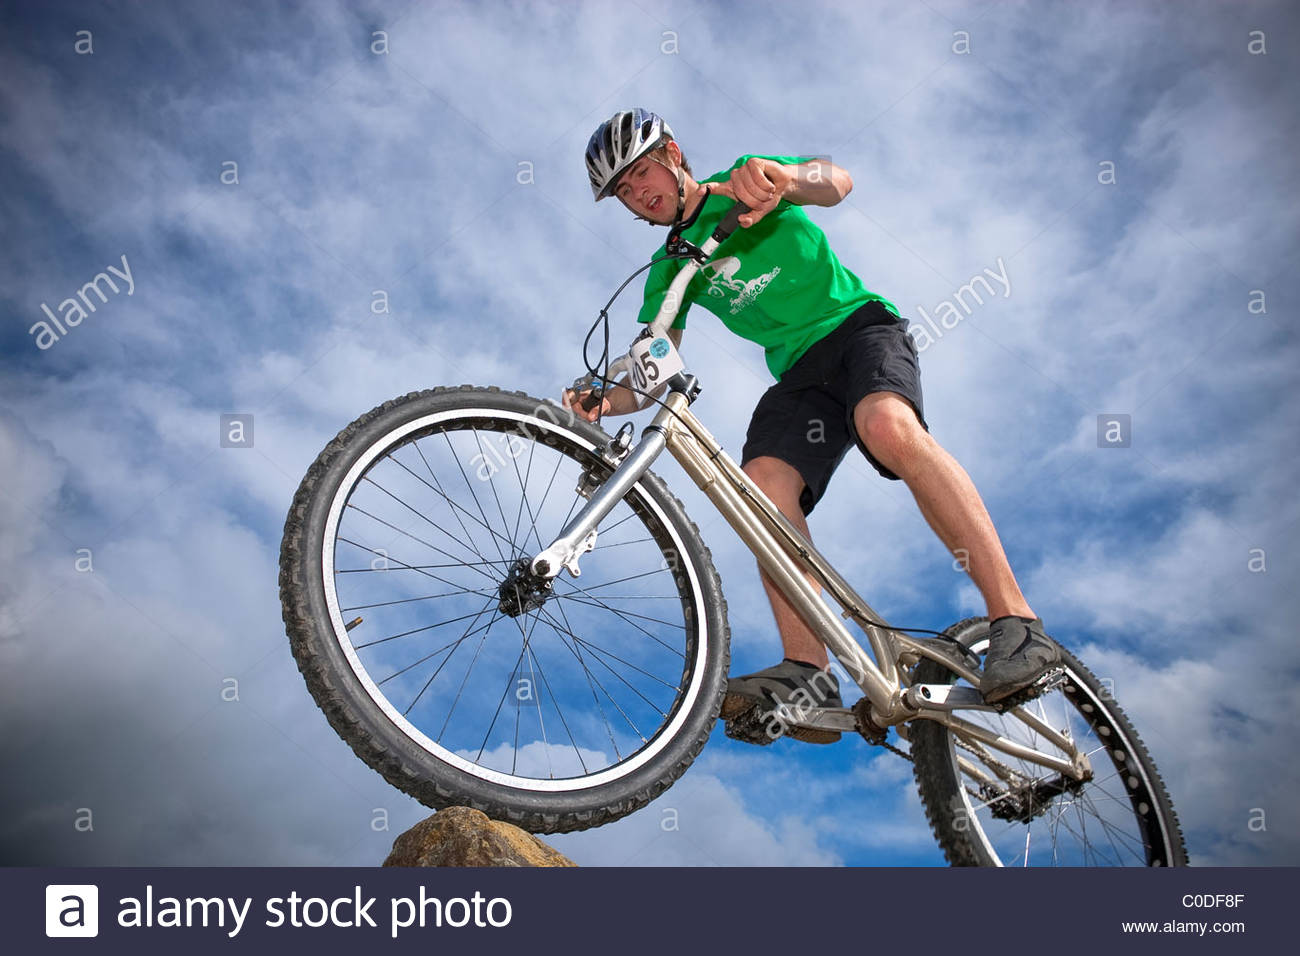 Trials rider performing tricks on bike - Stock Image